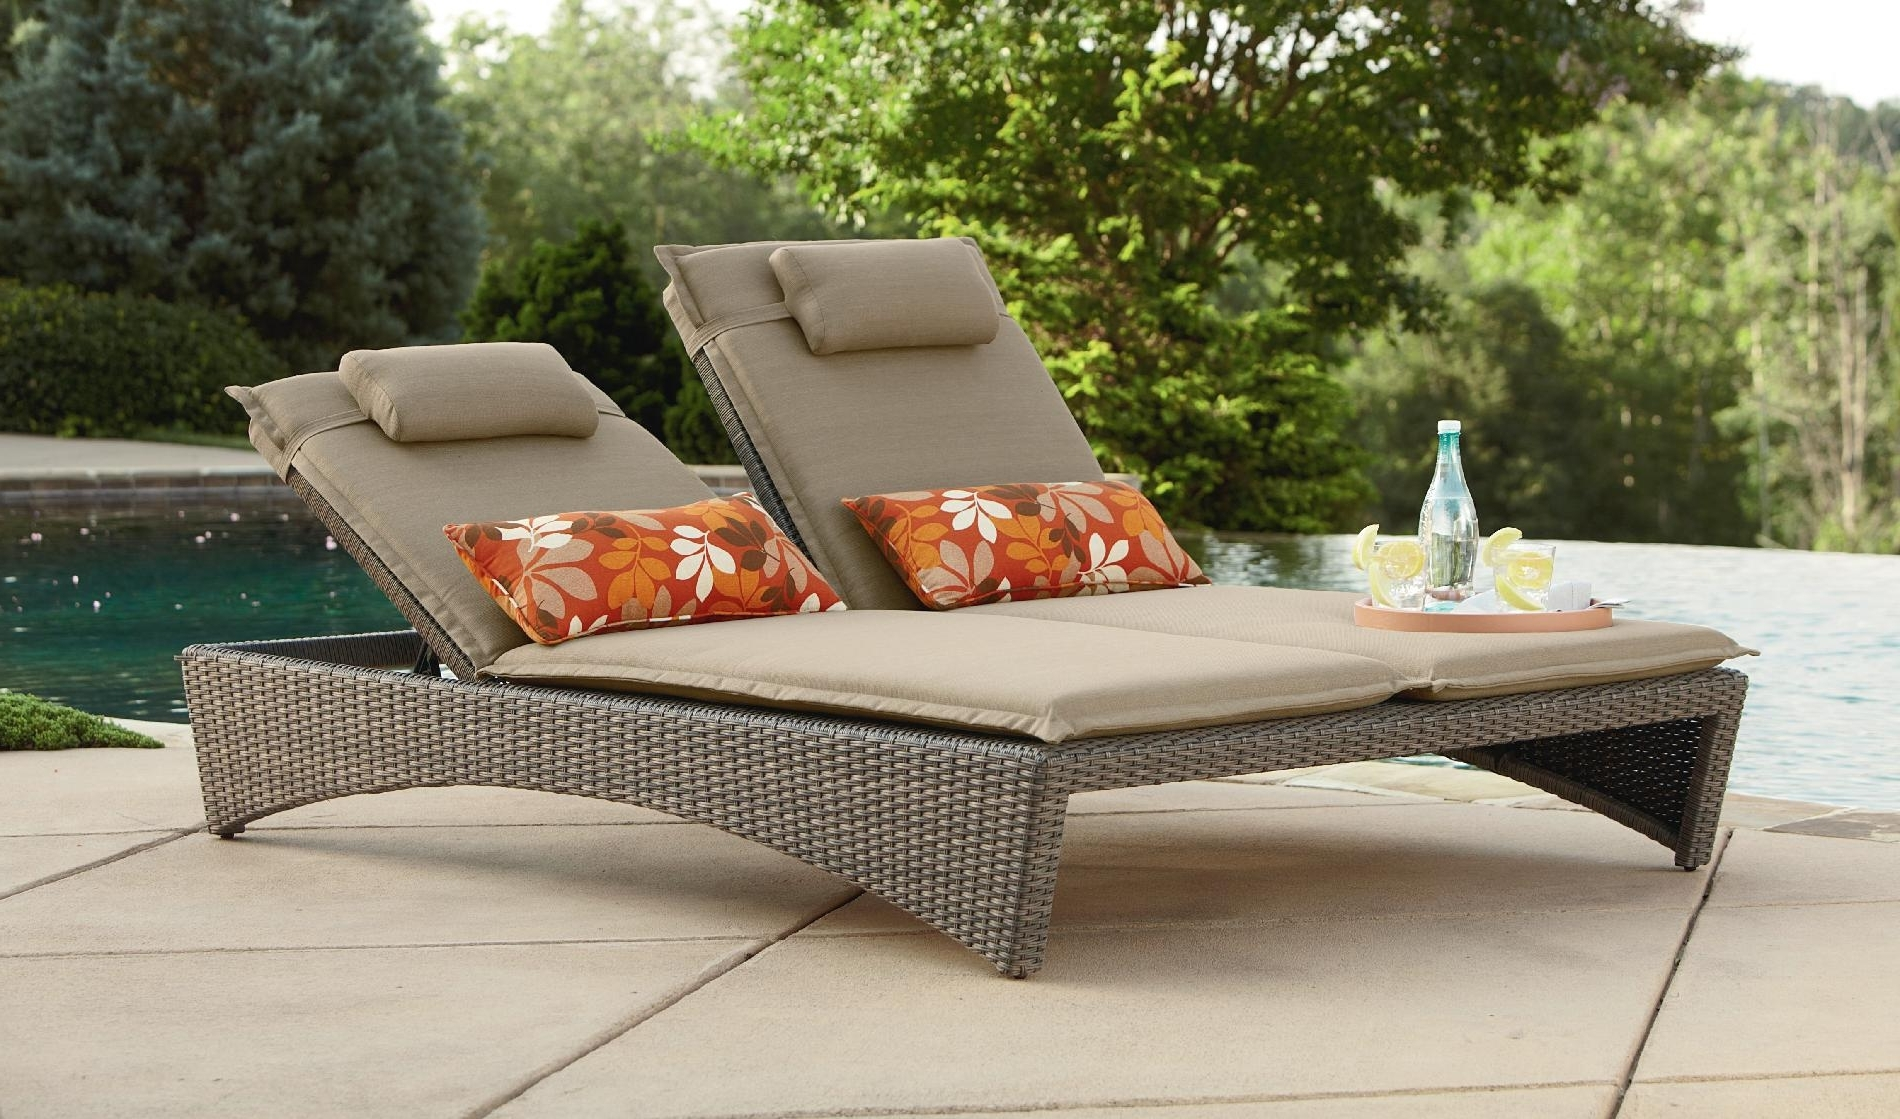 Pool Chaises For Most Popular Best Pool Chaise Lounge Chairs — Bed And Shower : Decorating Pool (View 10 of 15)